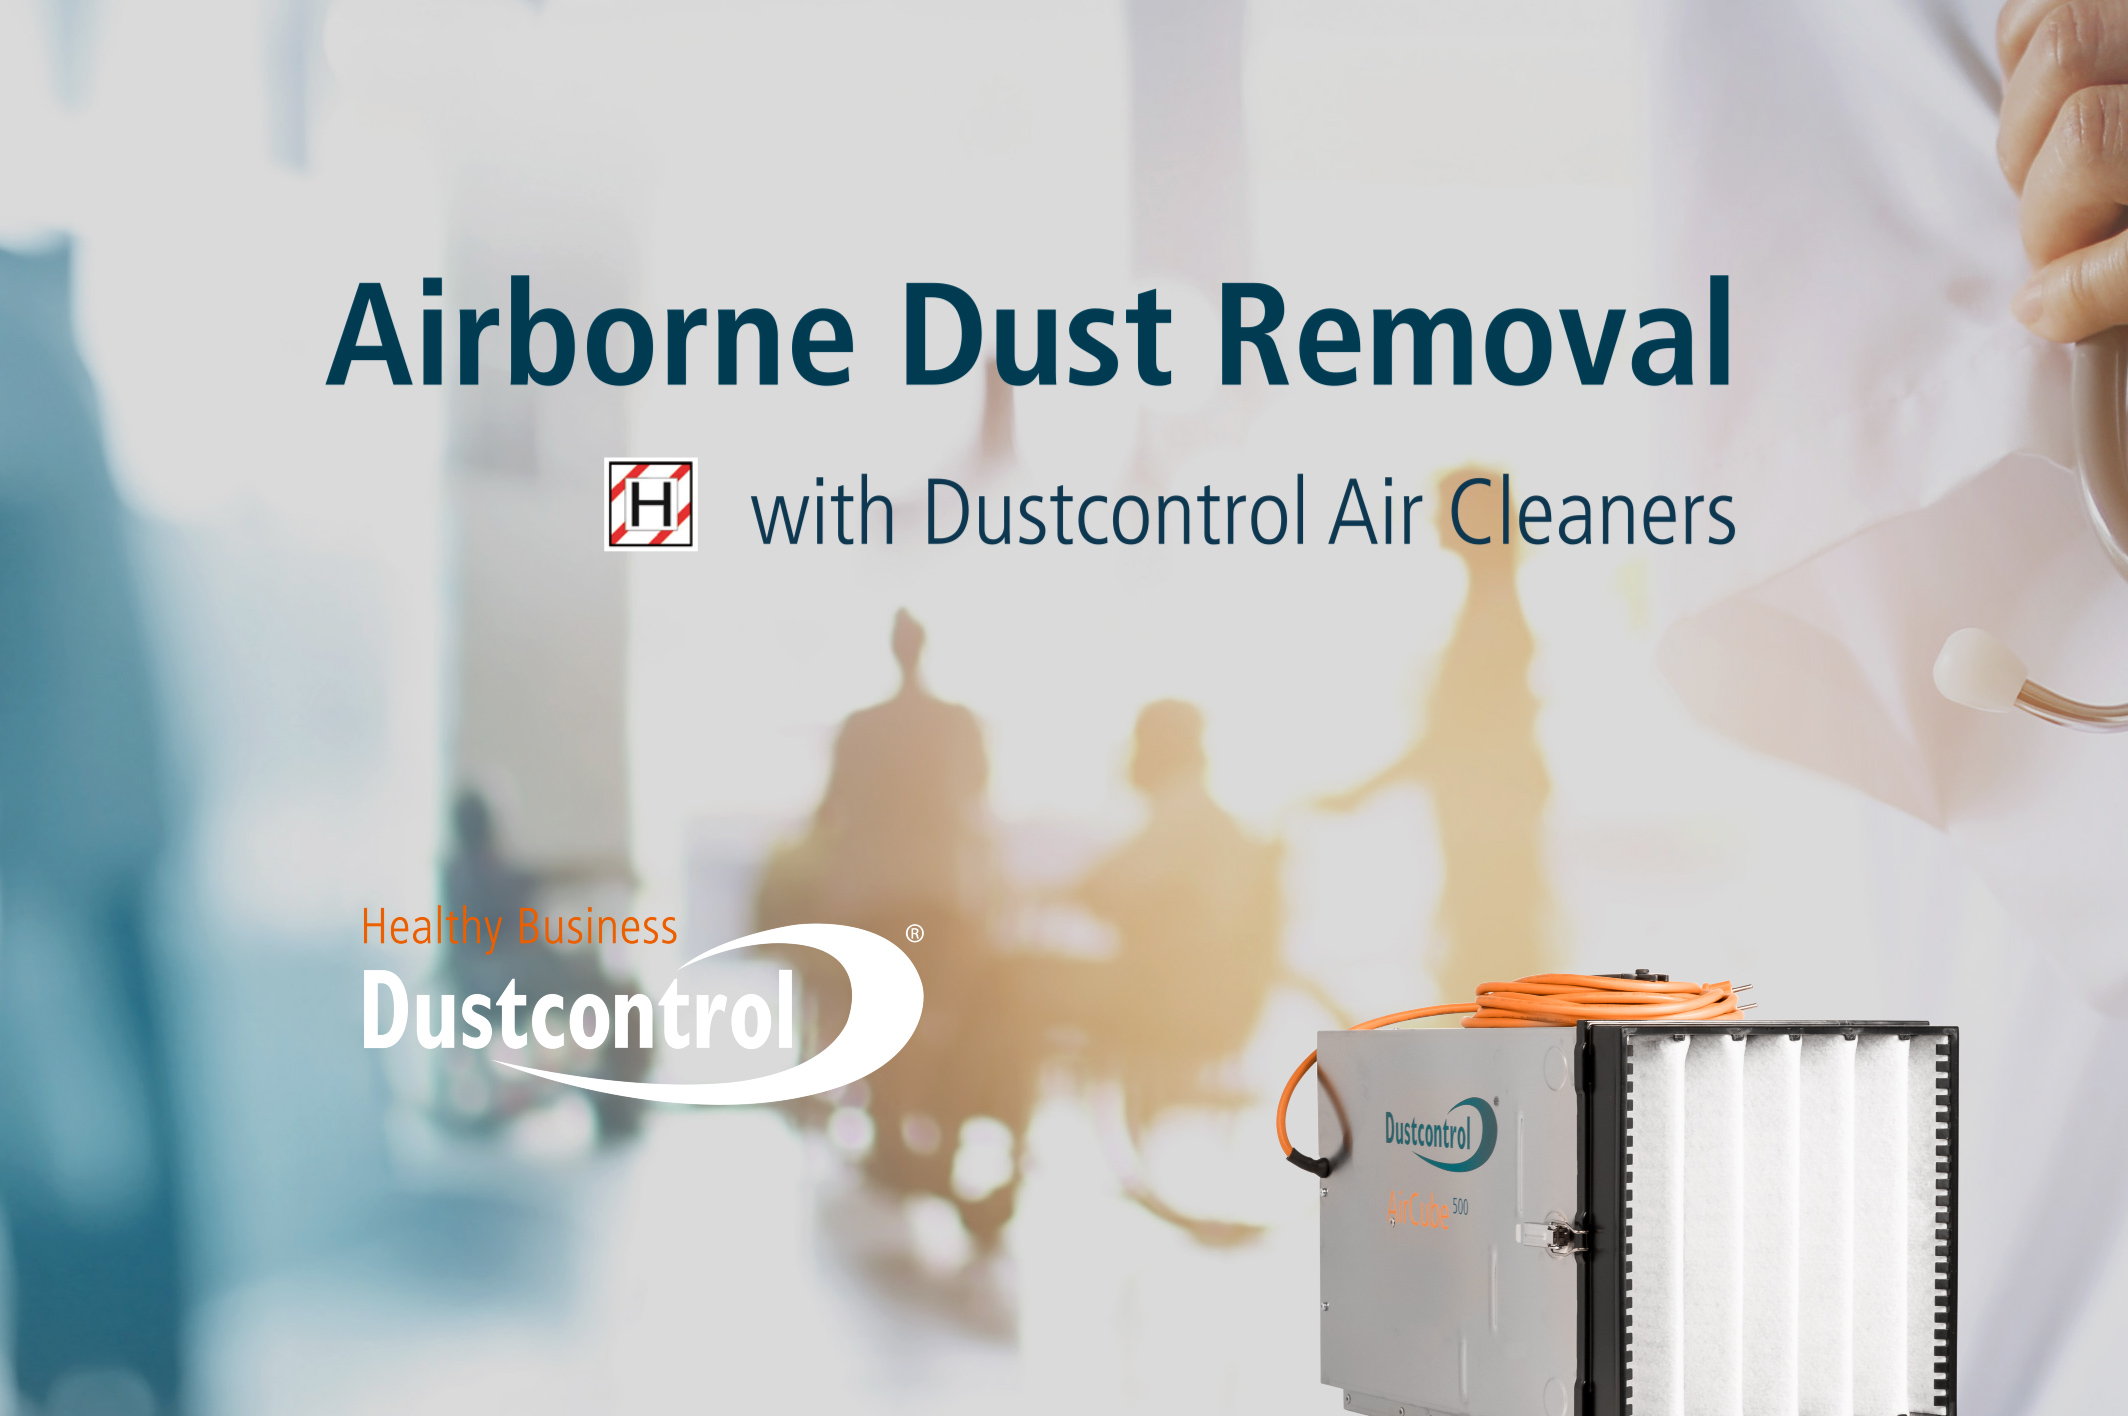 How industrial air cleaners used in construction can help limit the spread of airborne coronavirus particles in healthcare environments